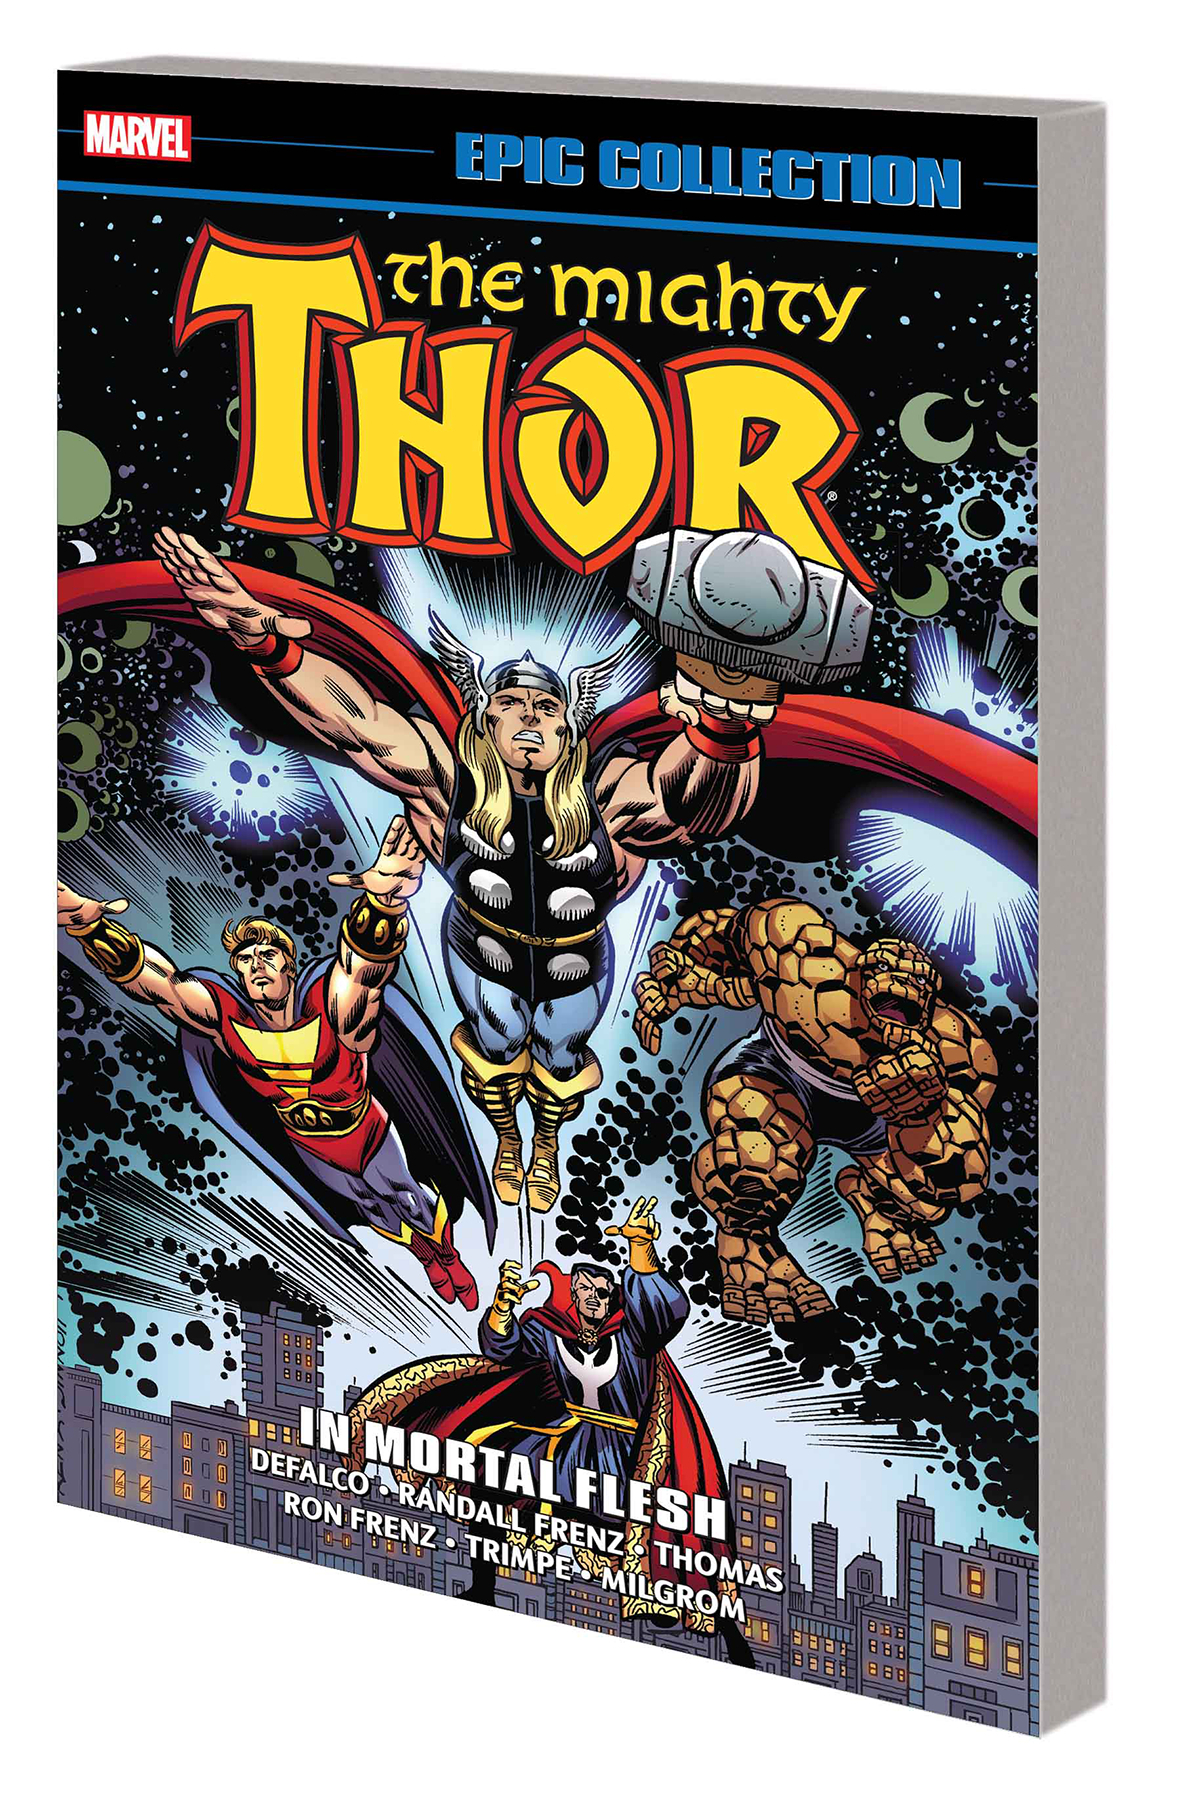 THOR EPIC COLLECTION TP IN MORTAL FLESH